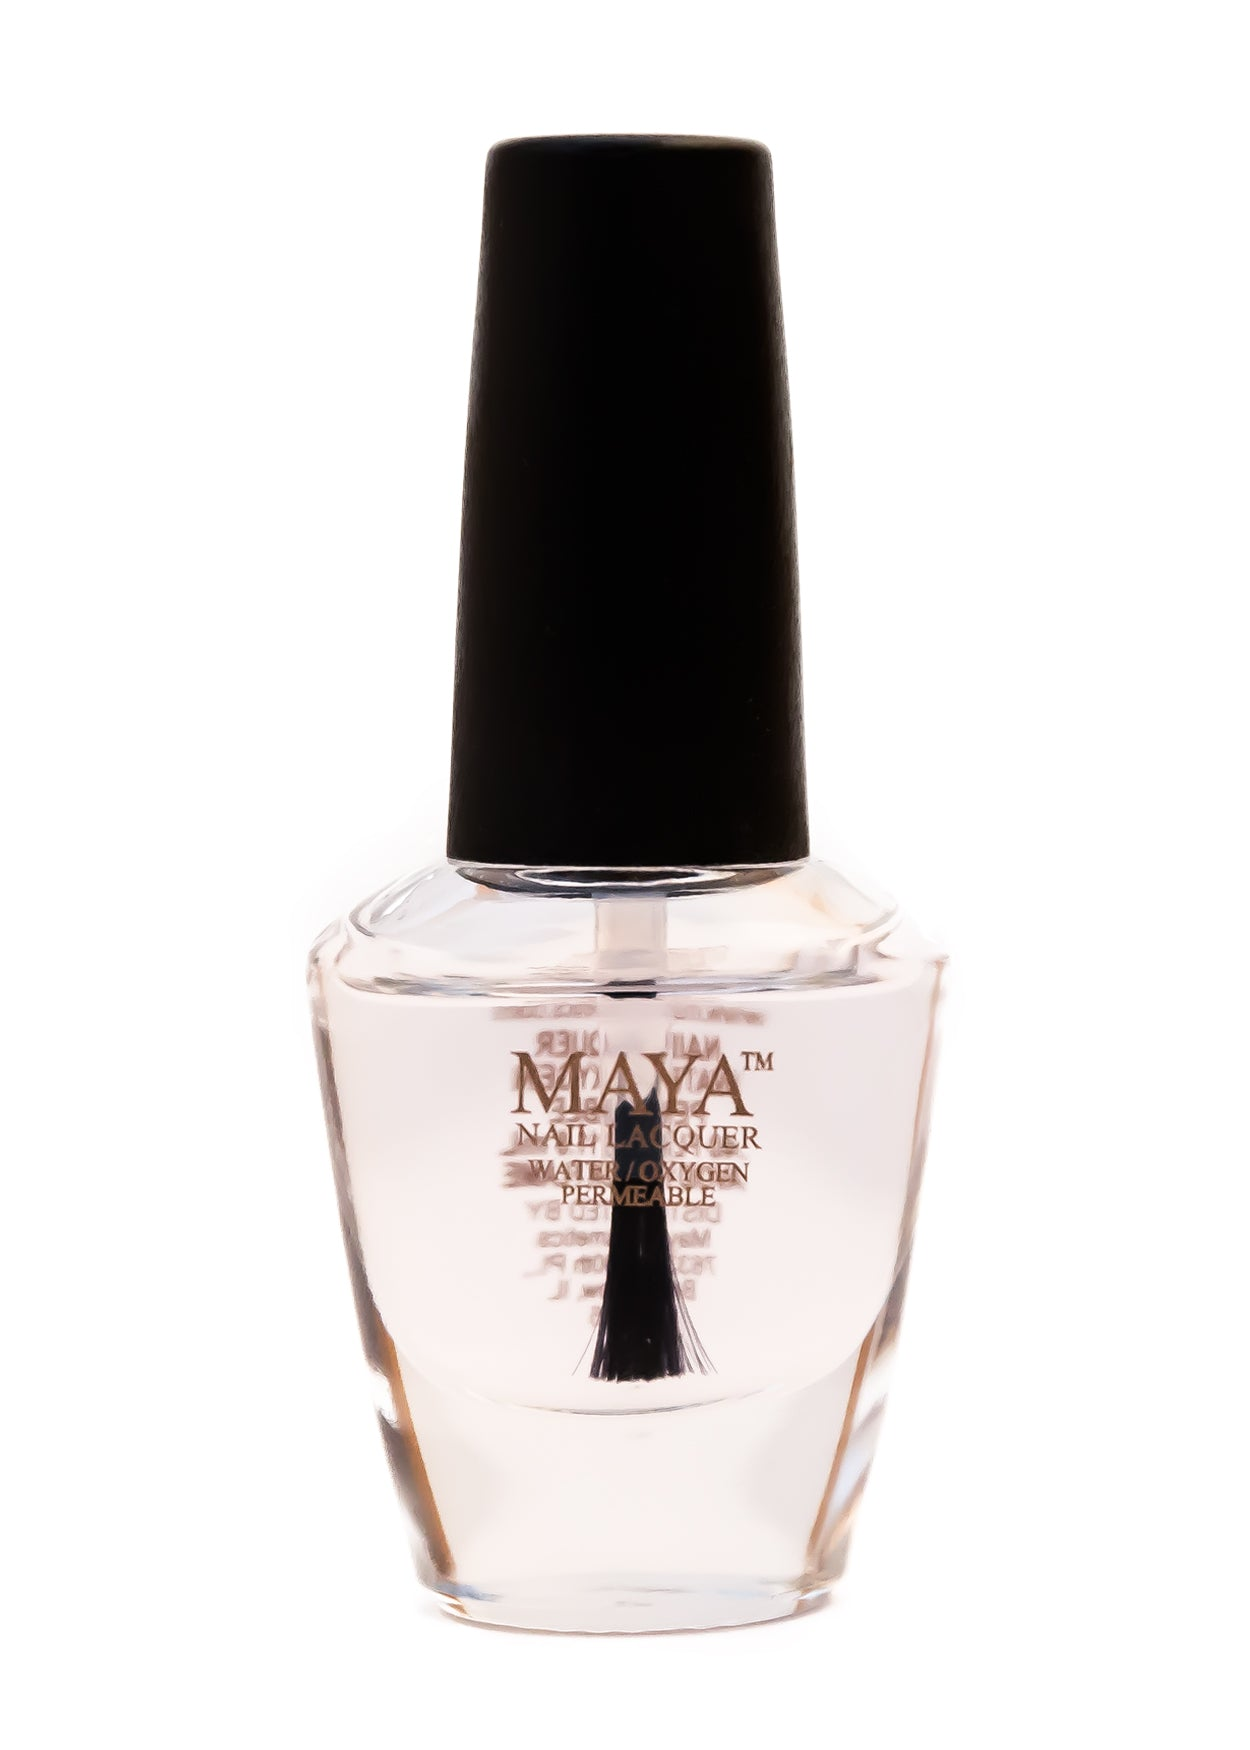 halal nail polish Top Coat Gloss